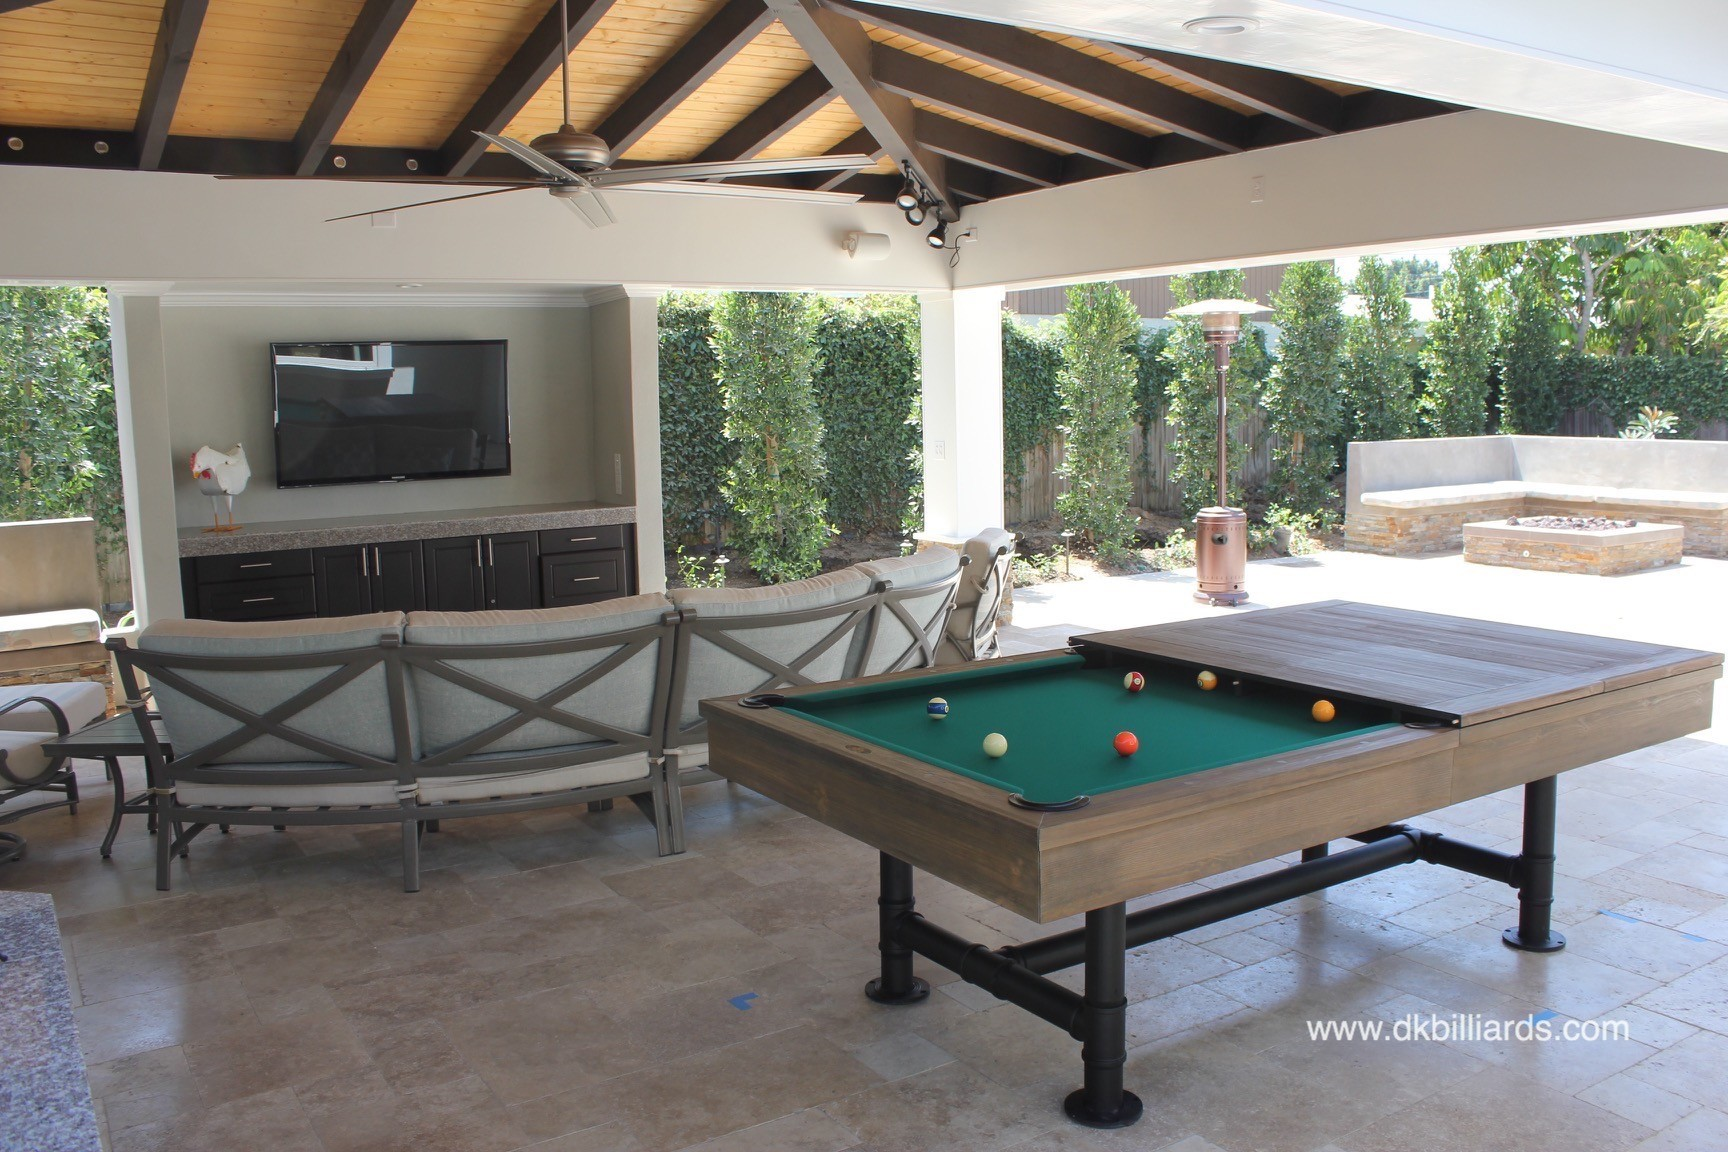 Southern California Residents Are Fortunate To Be Able To Spend A Lot Of  Time Outside. This Costa Mesa Family Created An Outdoor Living Space  Complete With ...